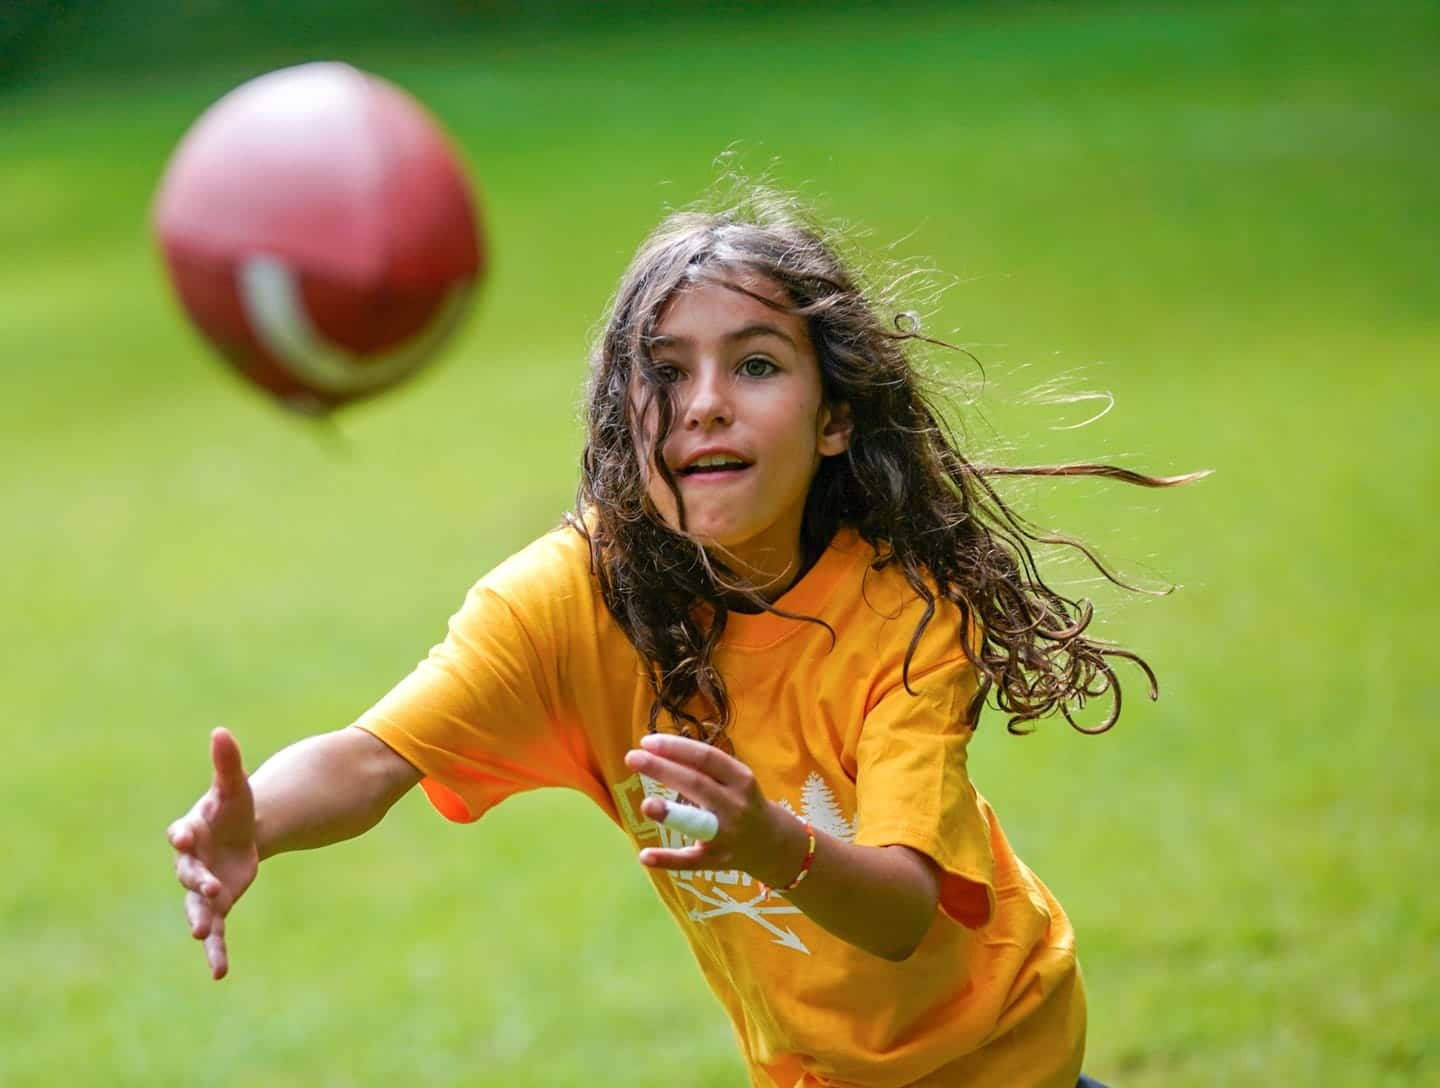 young girl about to catch a football